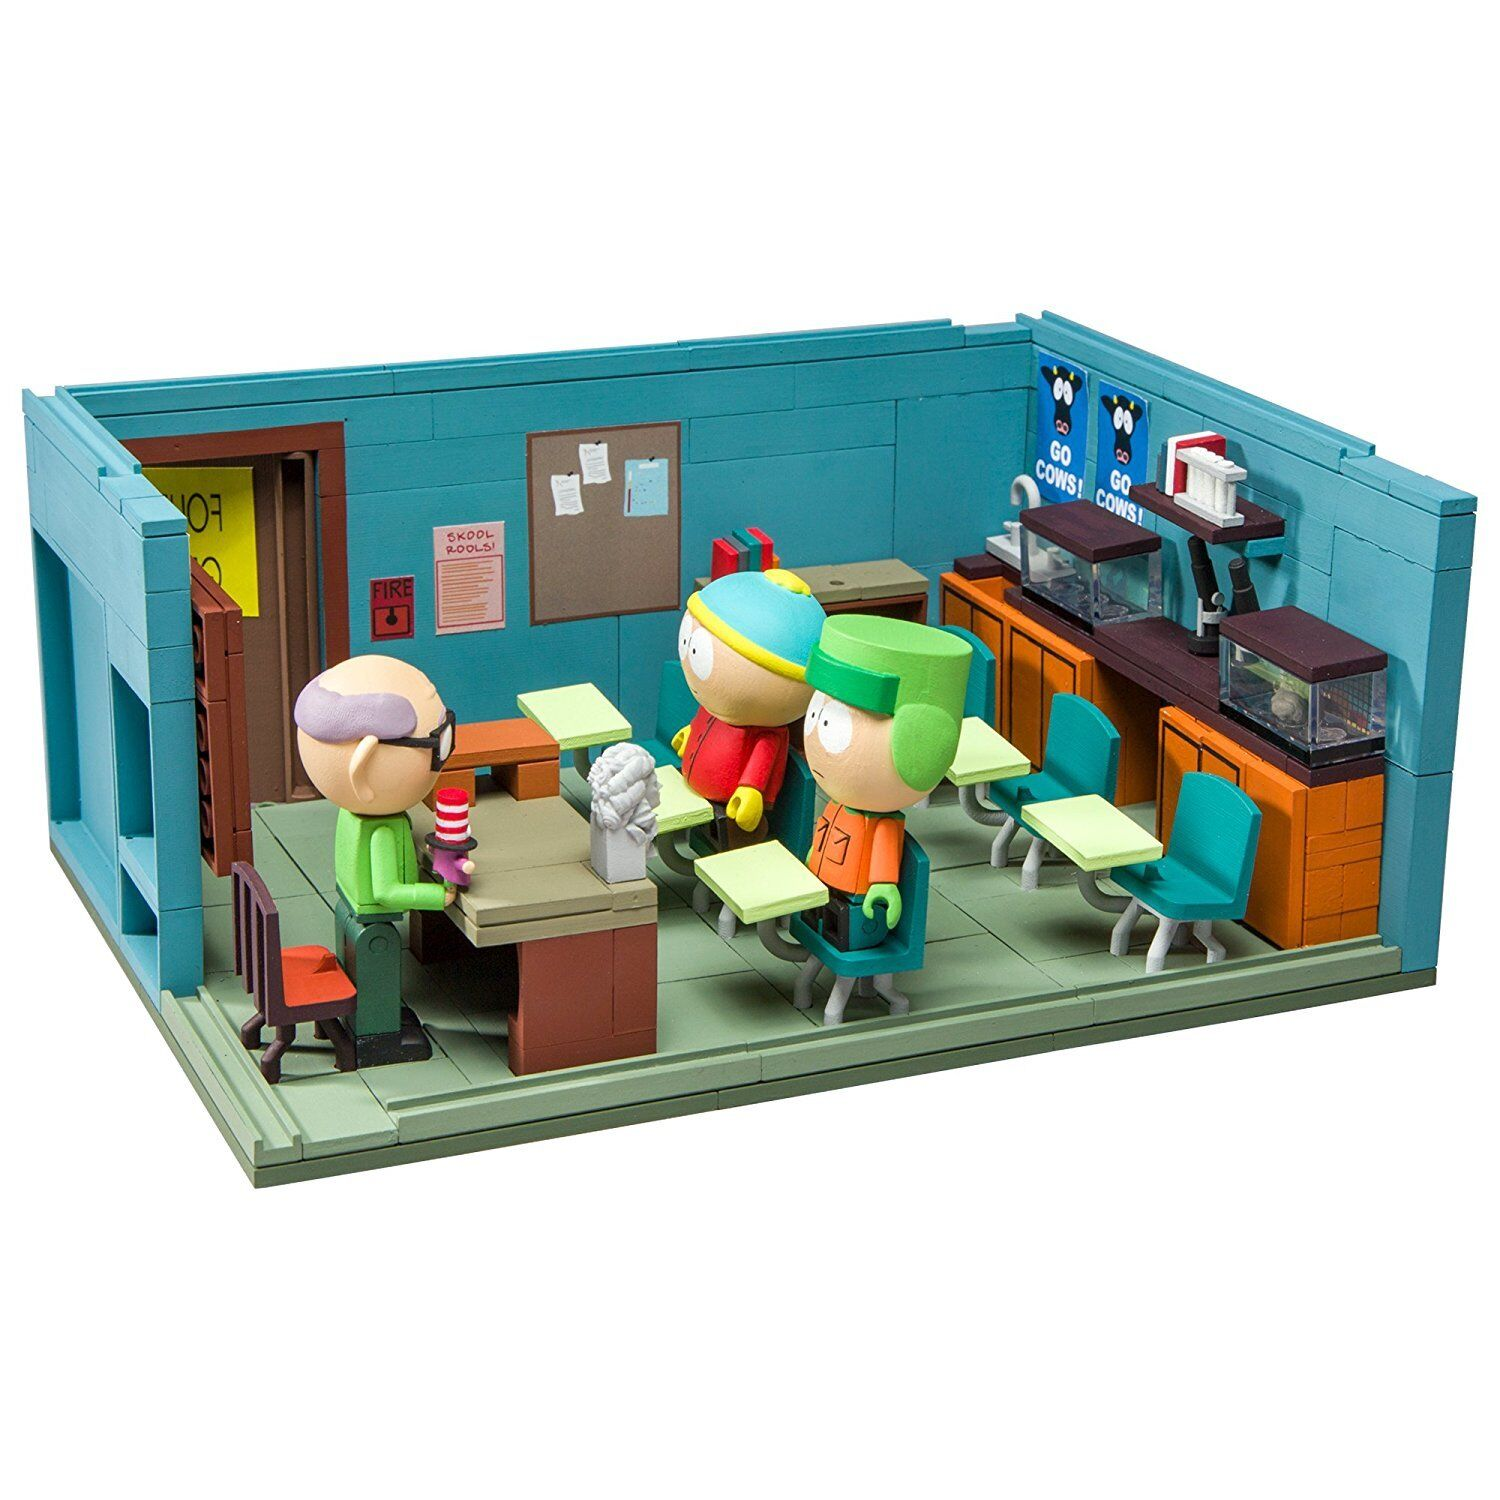 South Park Classroom Construction Set